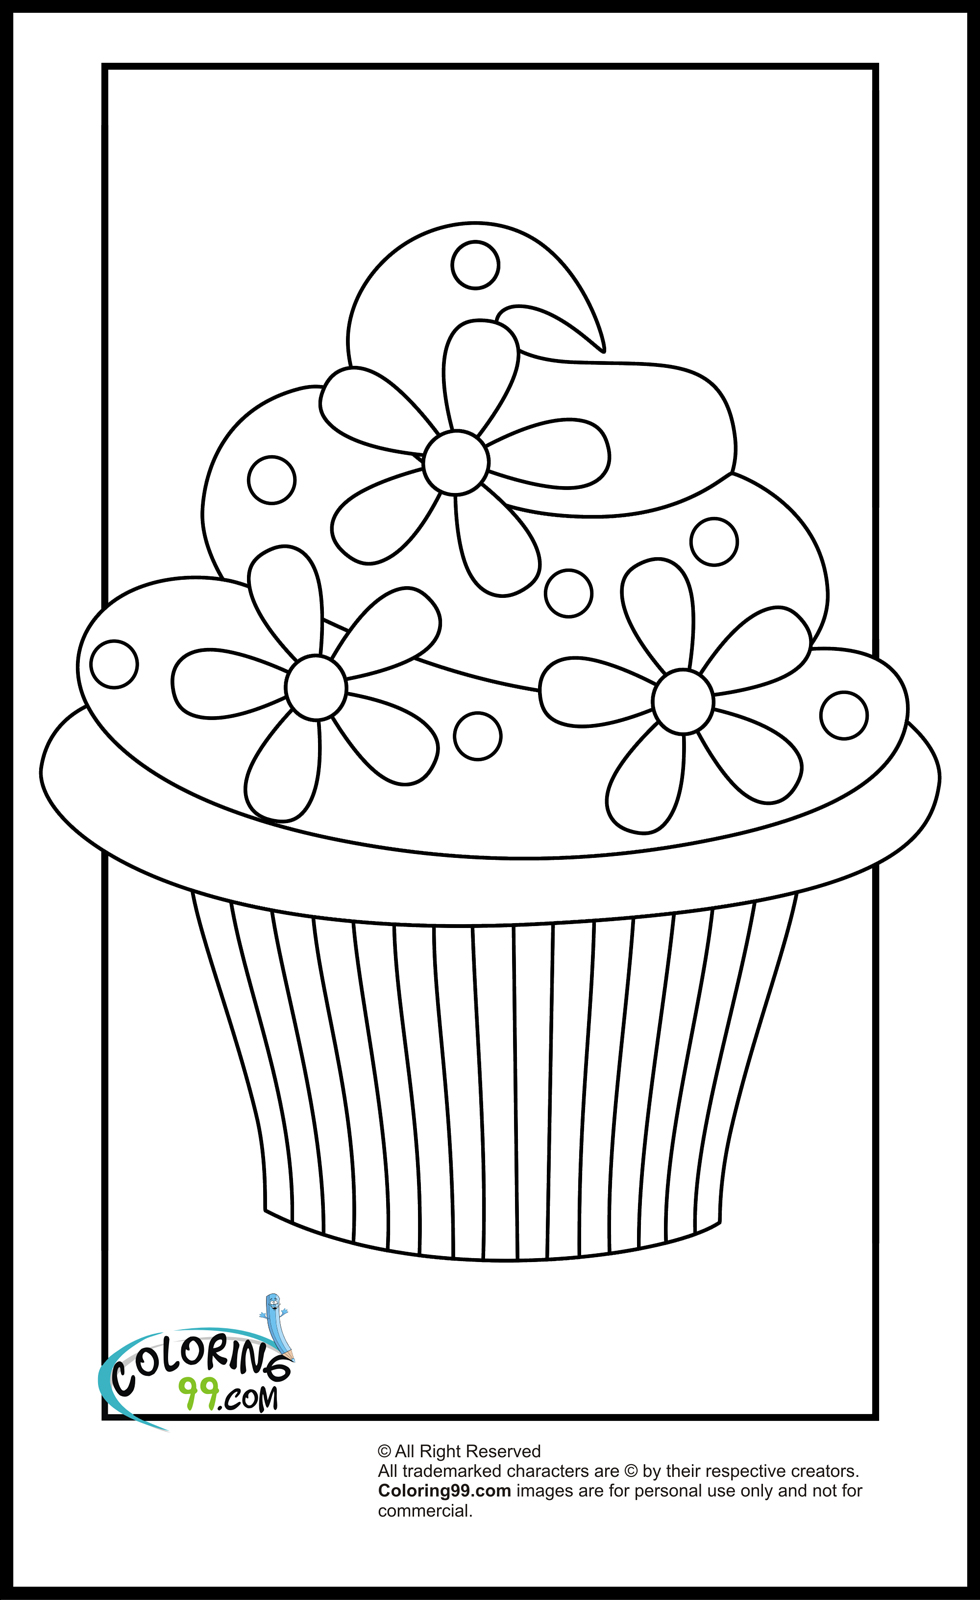 coloring printables lego coloring pages best coloring pages for kids printables coloring